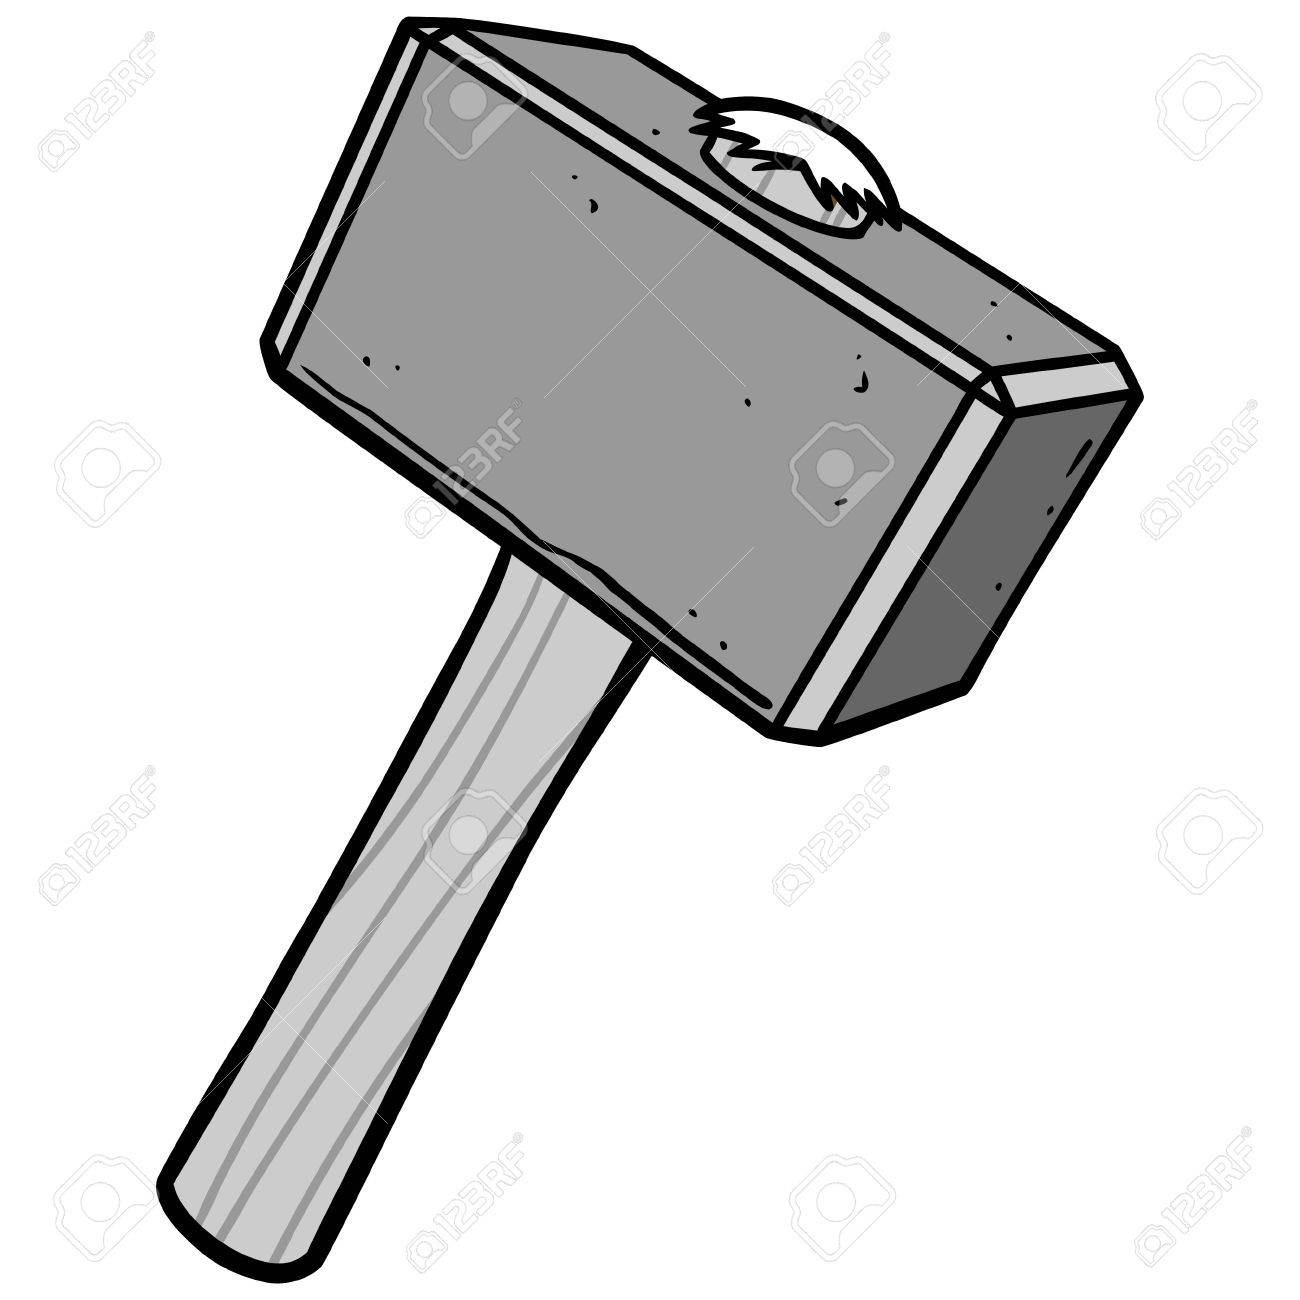 Sledgehammer Illustration Royalty Free Cliparts Vectors And Stock